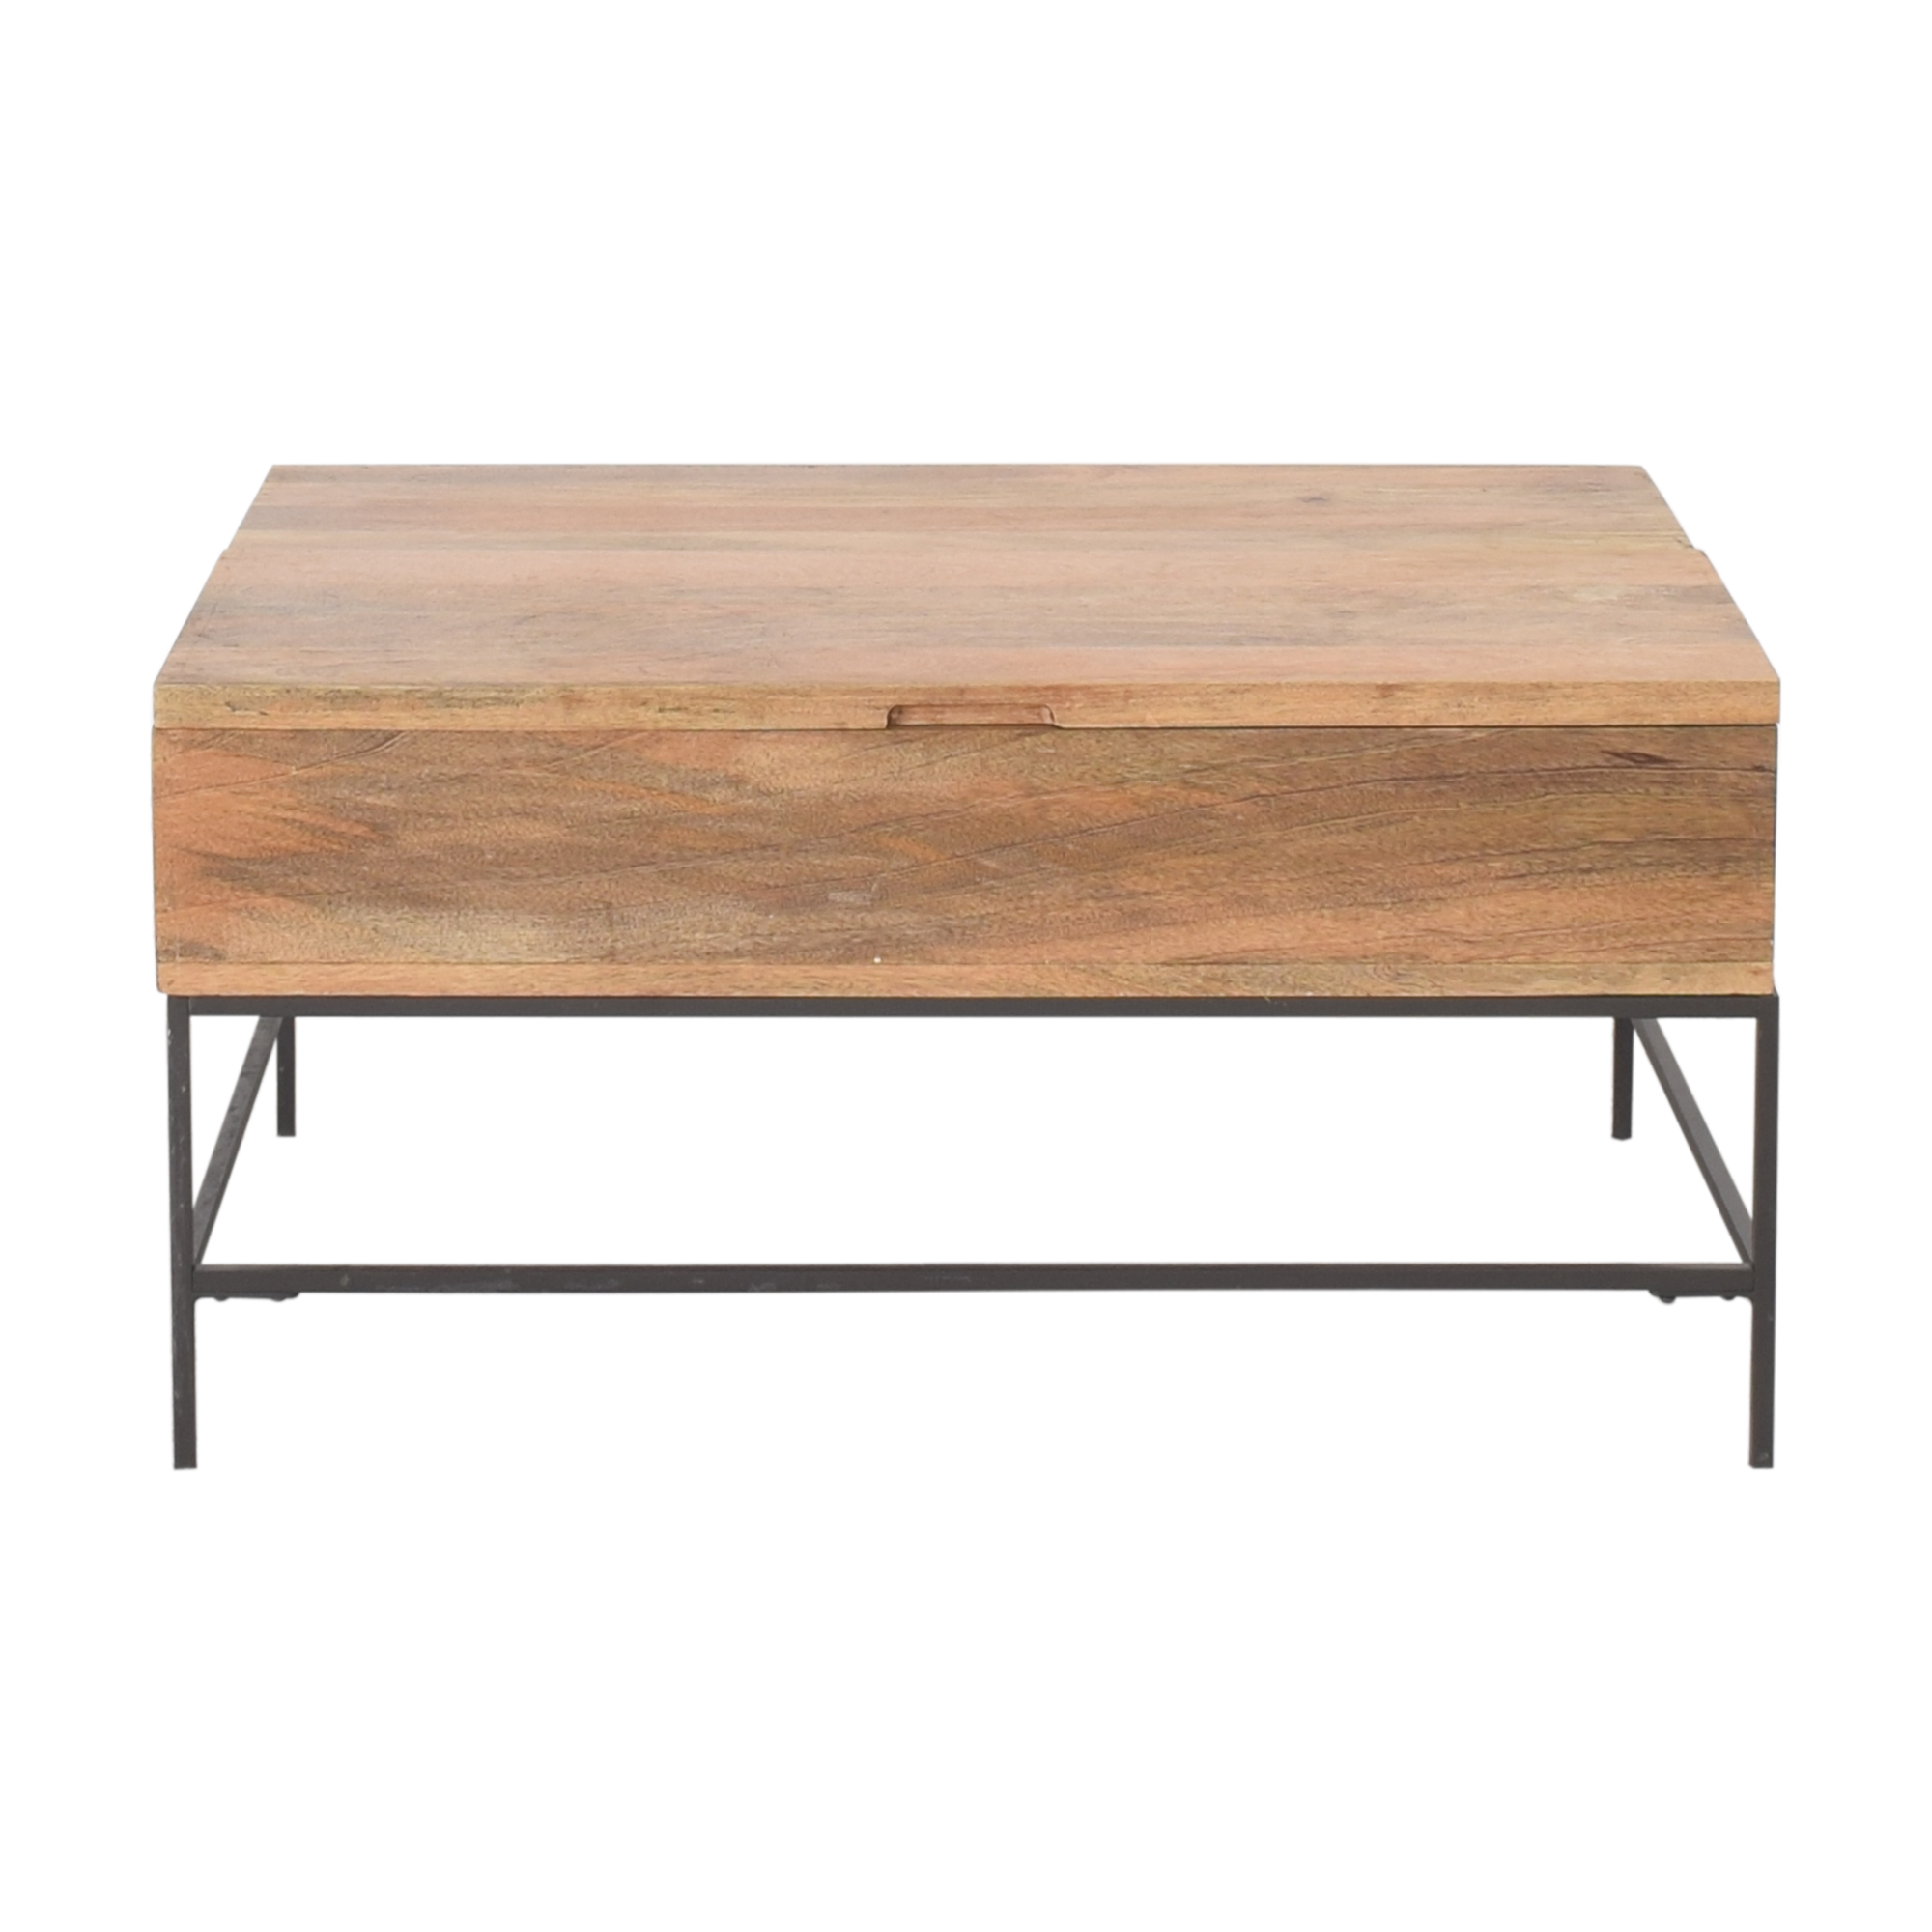 West Elm Industrial Storage Pop-Up Coffee Table / Tables